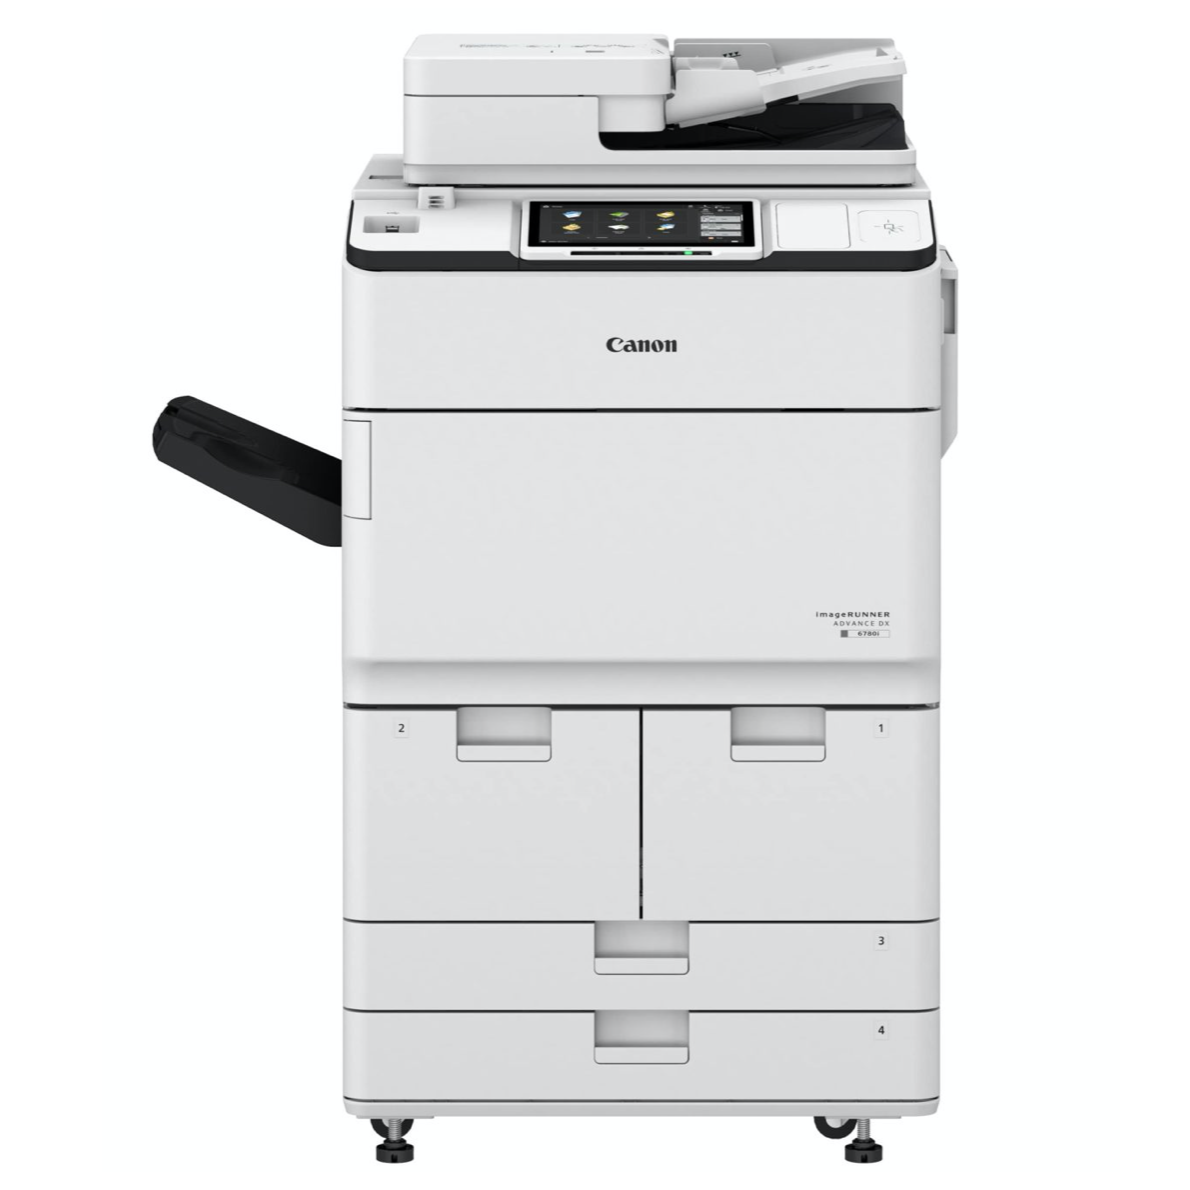 Kopirni stroj Canon iR ADVANCE DX 6765i